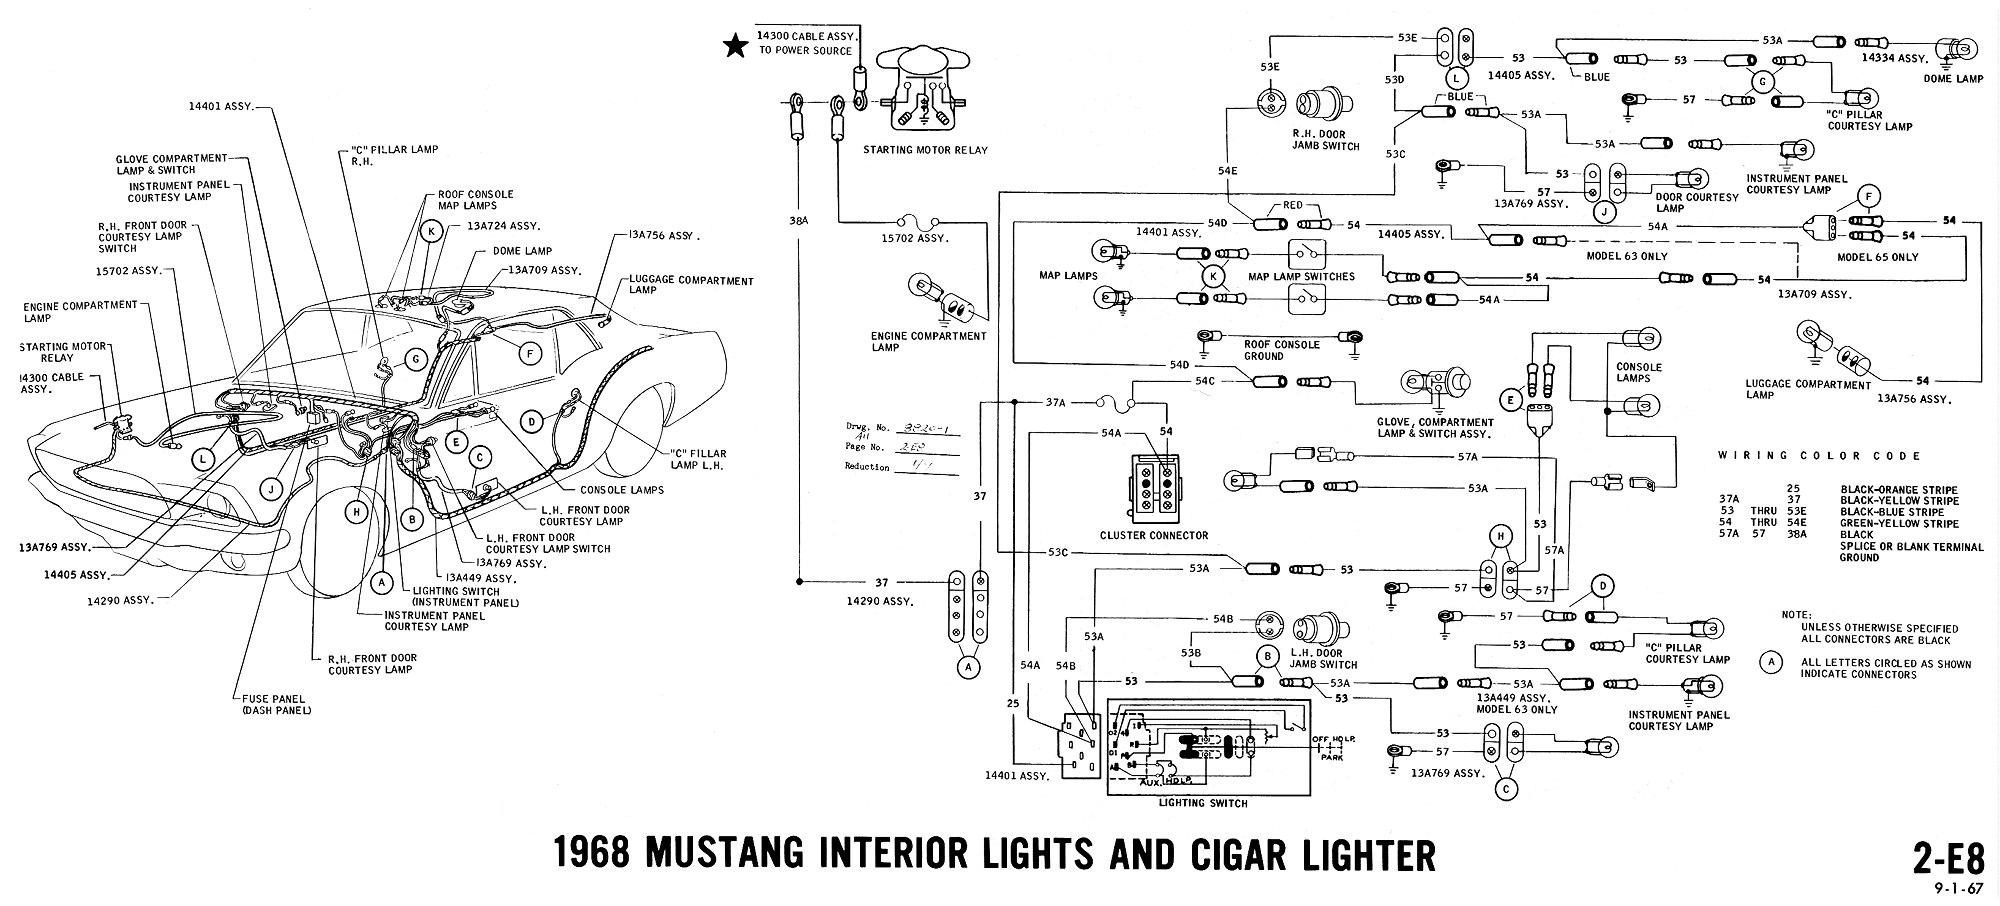 1968 Mustang Wiring Diagrams on 1966 mustang rear light wiring diagram